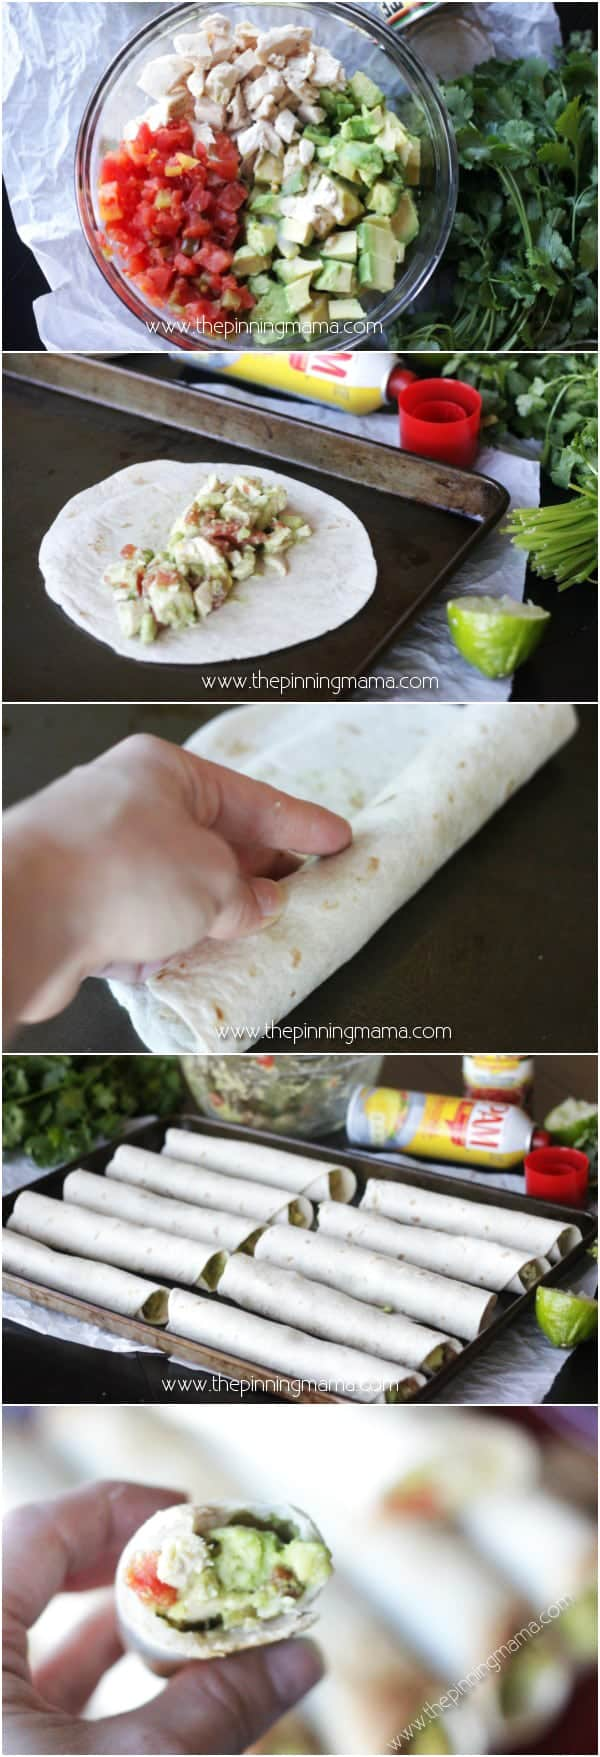 Who knew it was so easy to make taquitos! Making them in the oven makes this comfort food much healthier too. Chicken, avocado and lime are so delicious in this recipe!